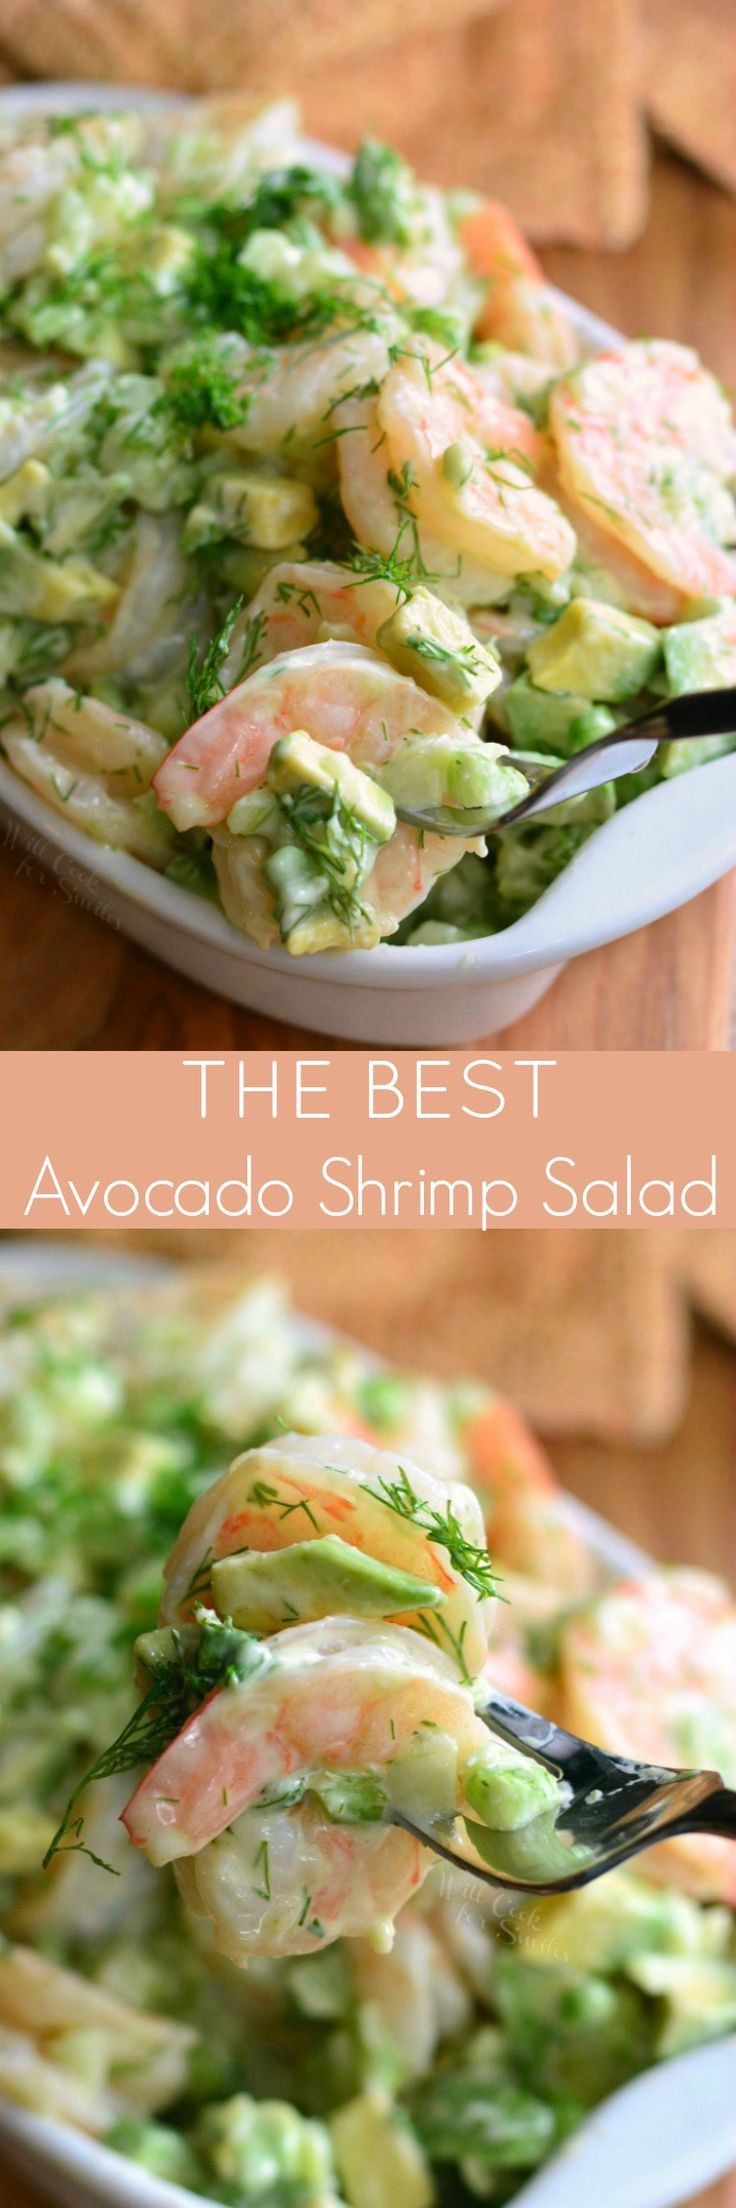 The BEST Avocado Cold Shrimp Salad. This shrimp salad is made with delicious boiled shrimp, fresh avocado, fresh dill week, green onions, and some celery for added crunch. (Keto Recipes)